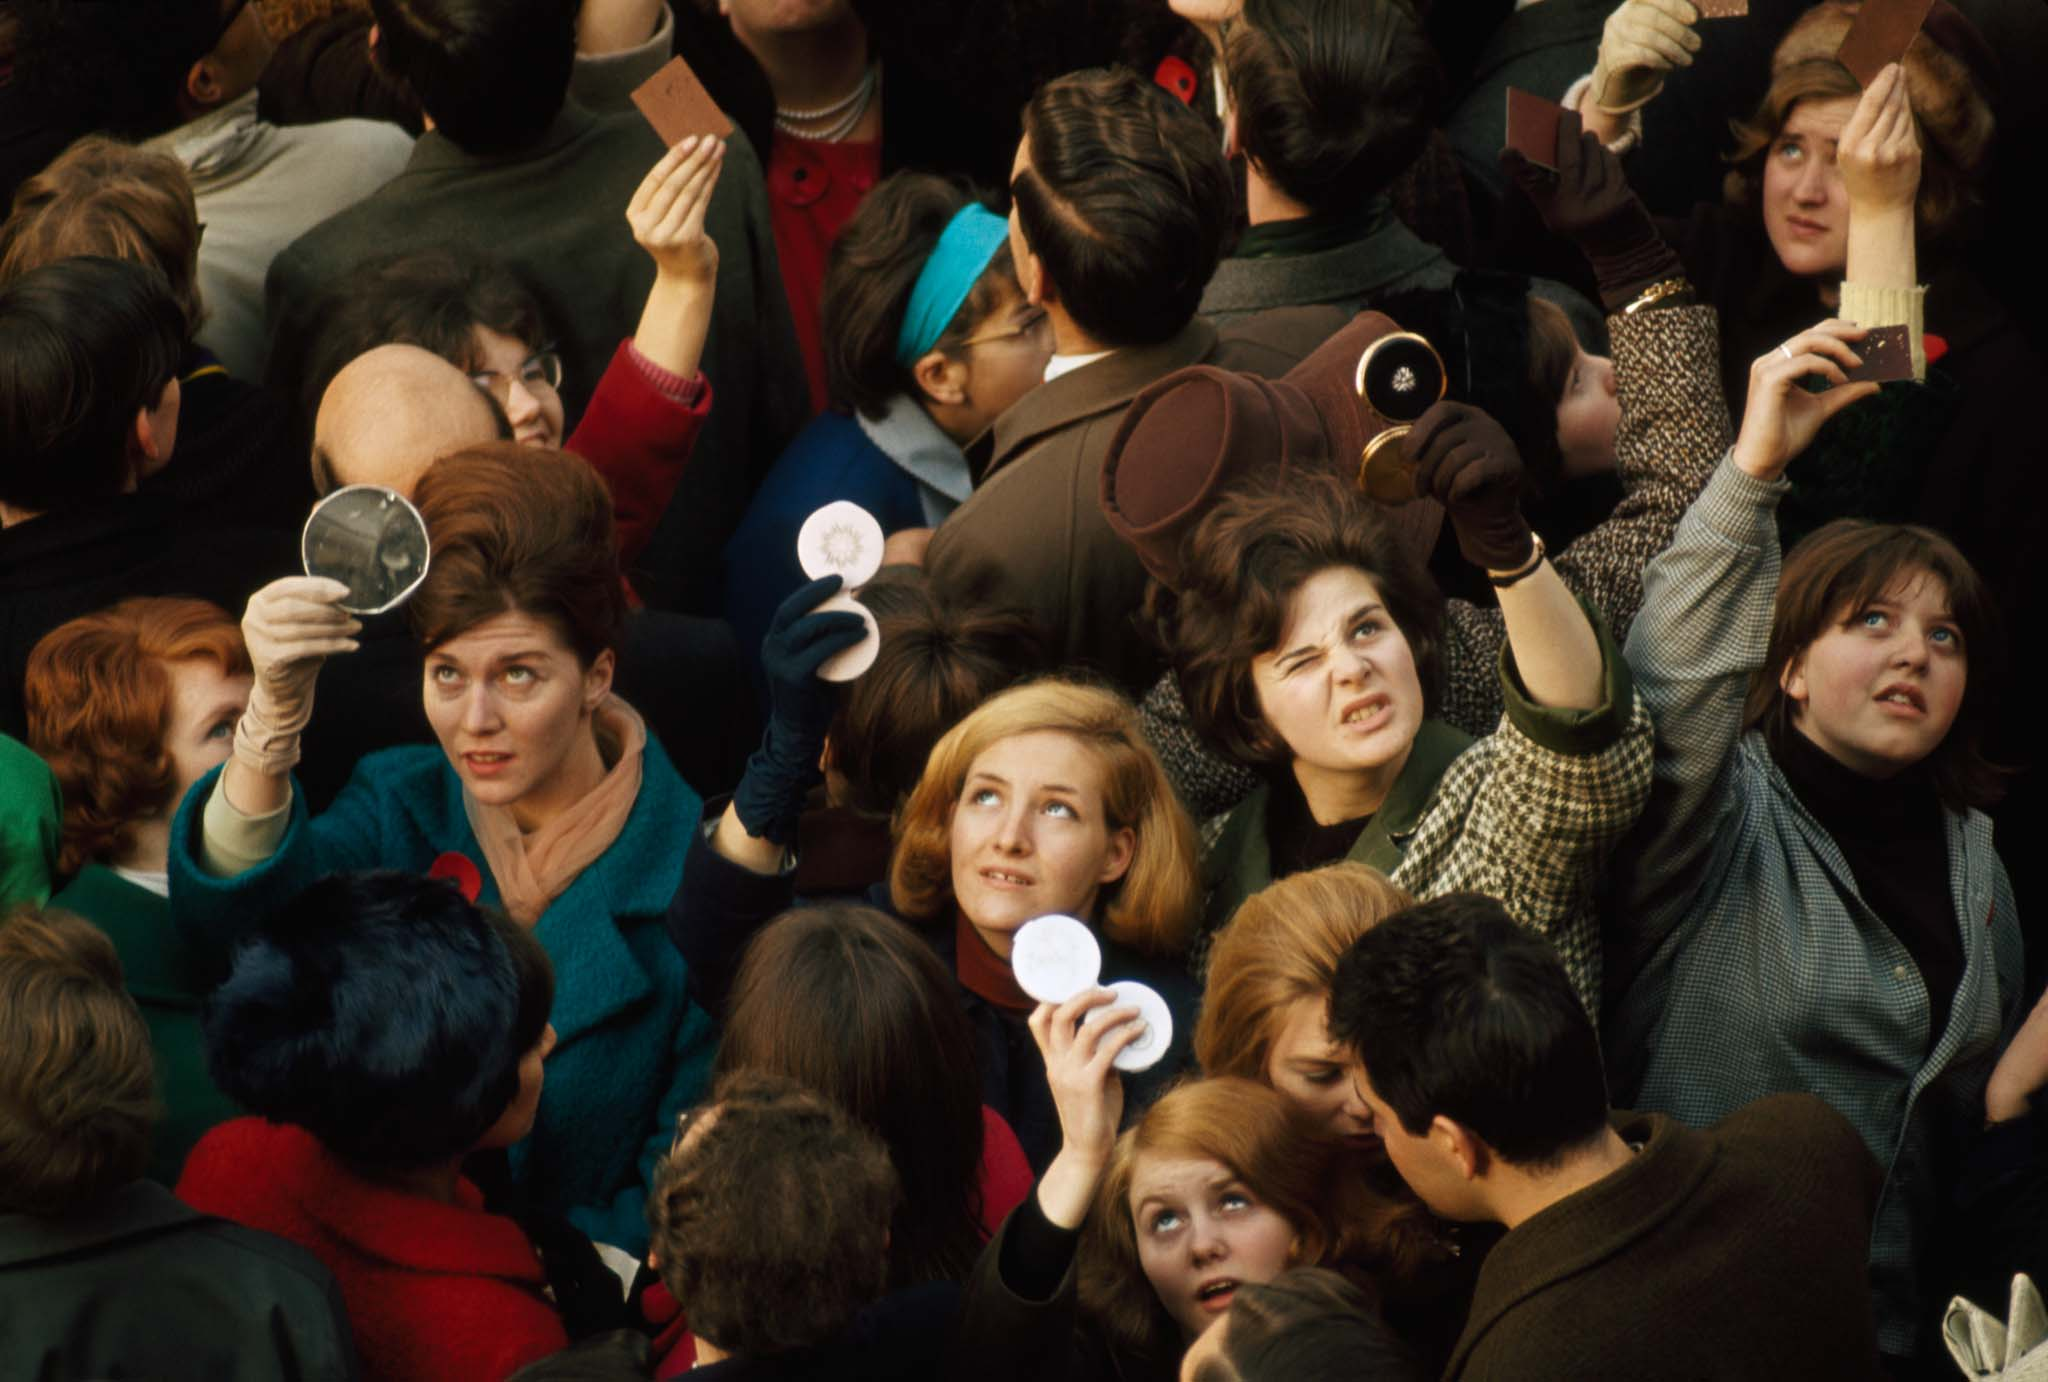 Women use compact mirrors in a packed crowd to catch sight of the queen in  London, 1966 - [2048x1382]